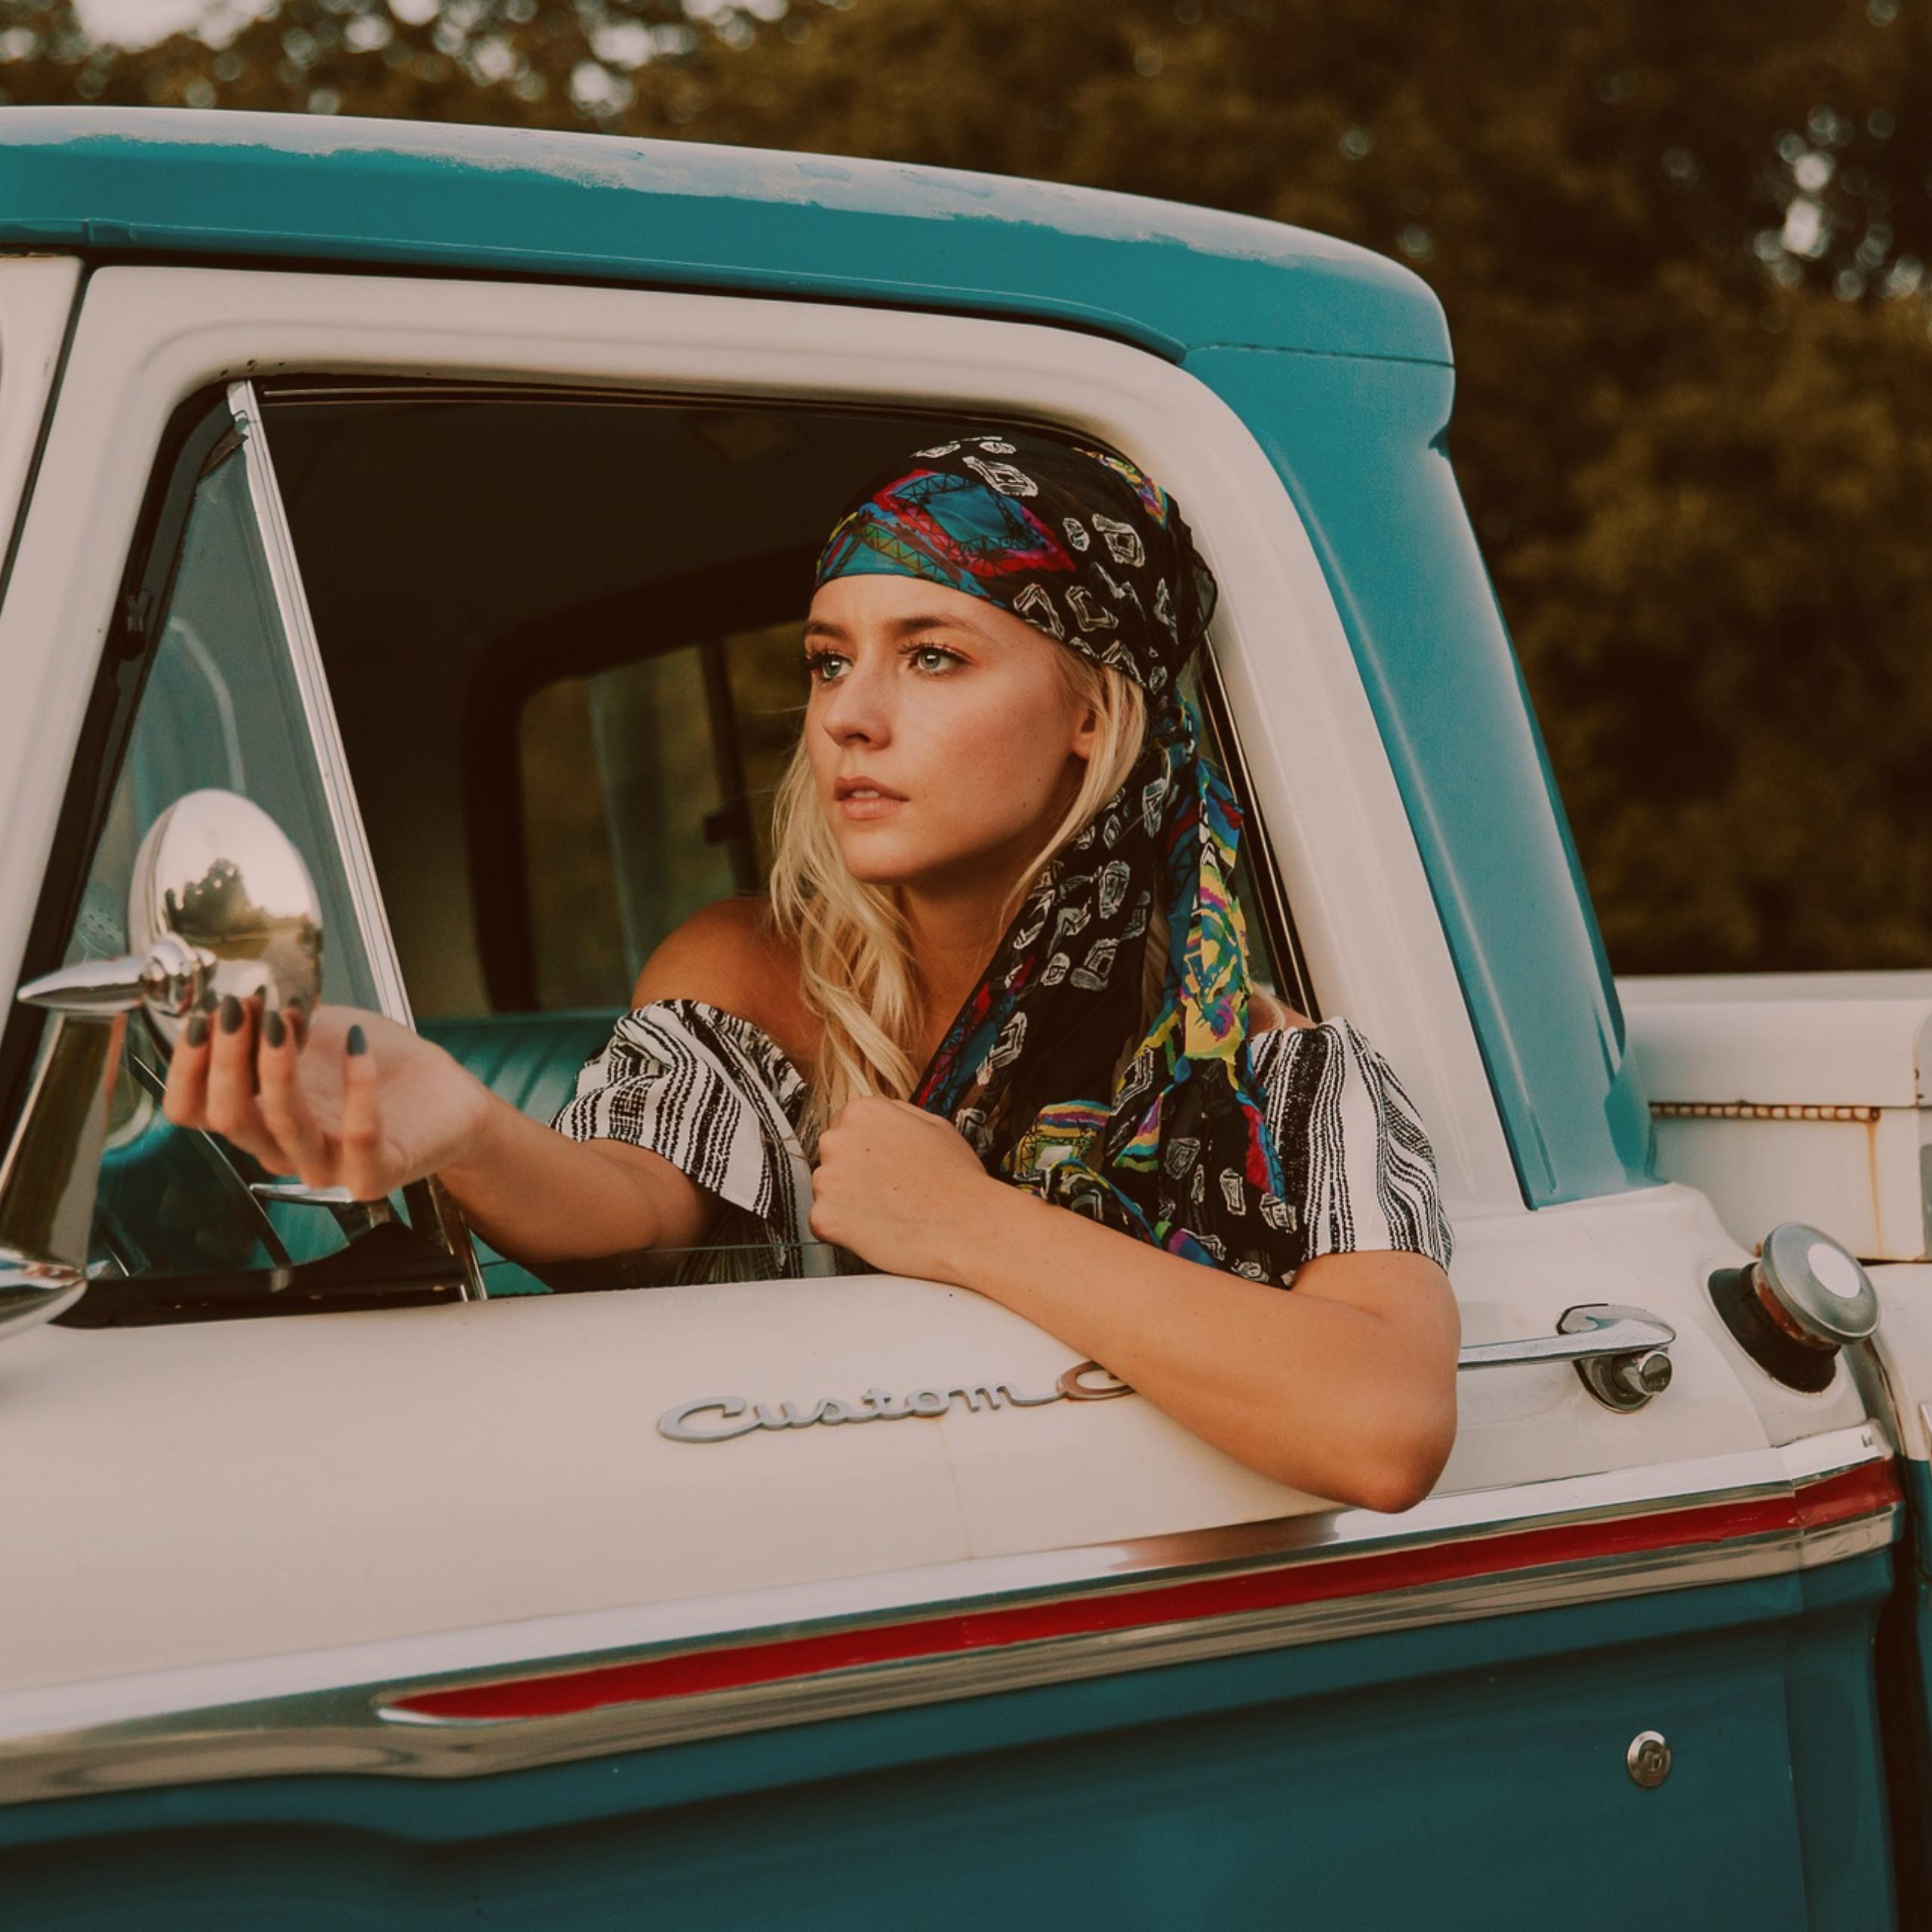 young girl in vintage pickup truck driver seat adjusting side view mirror